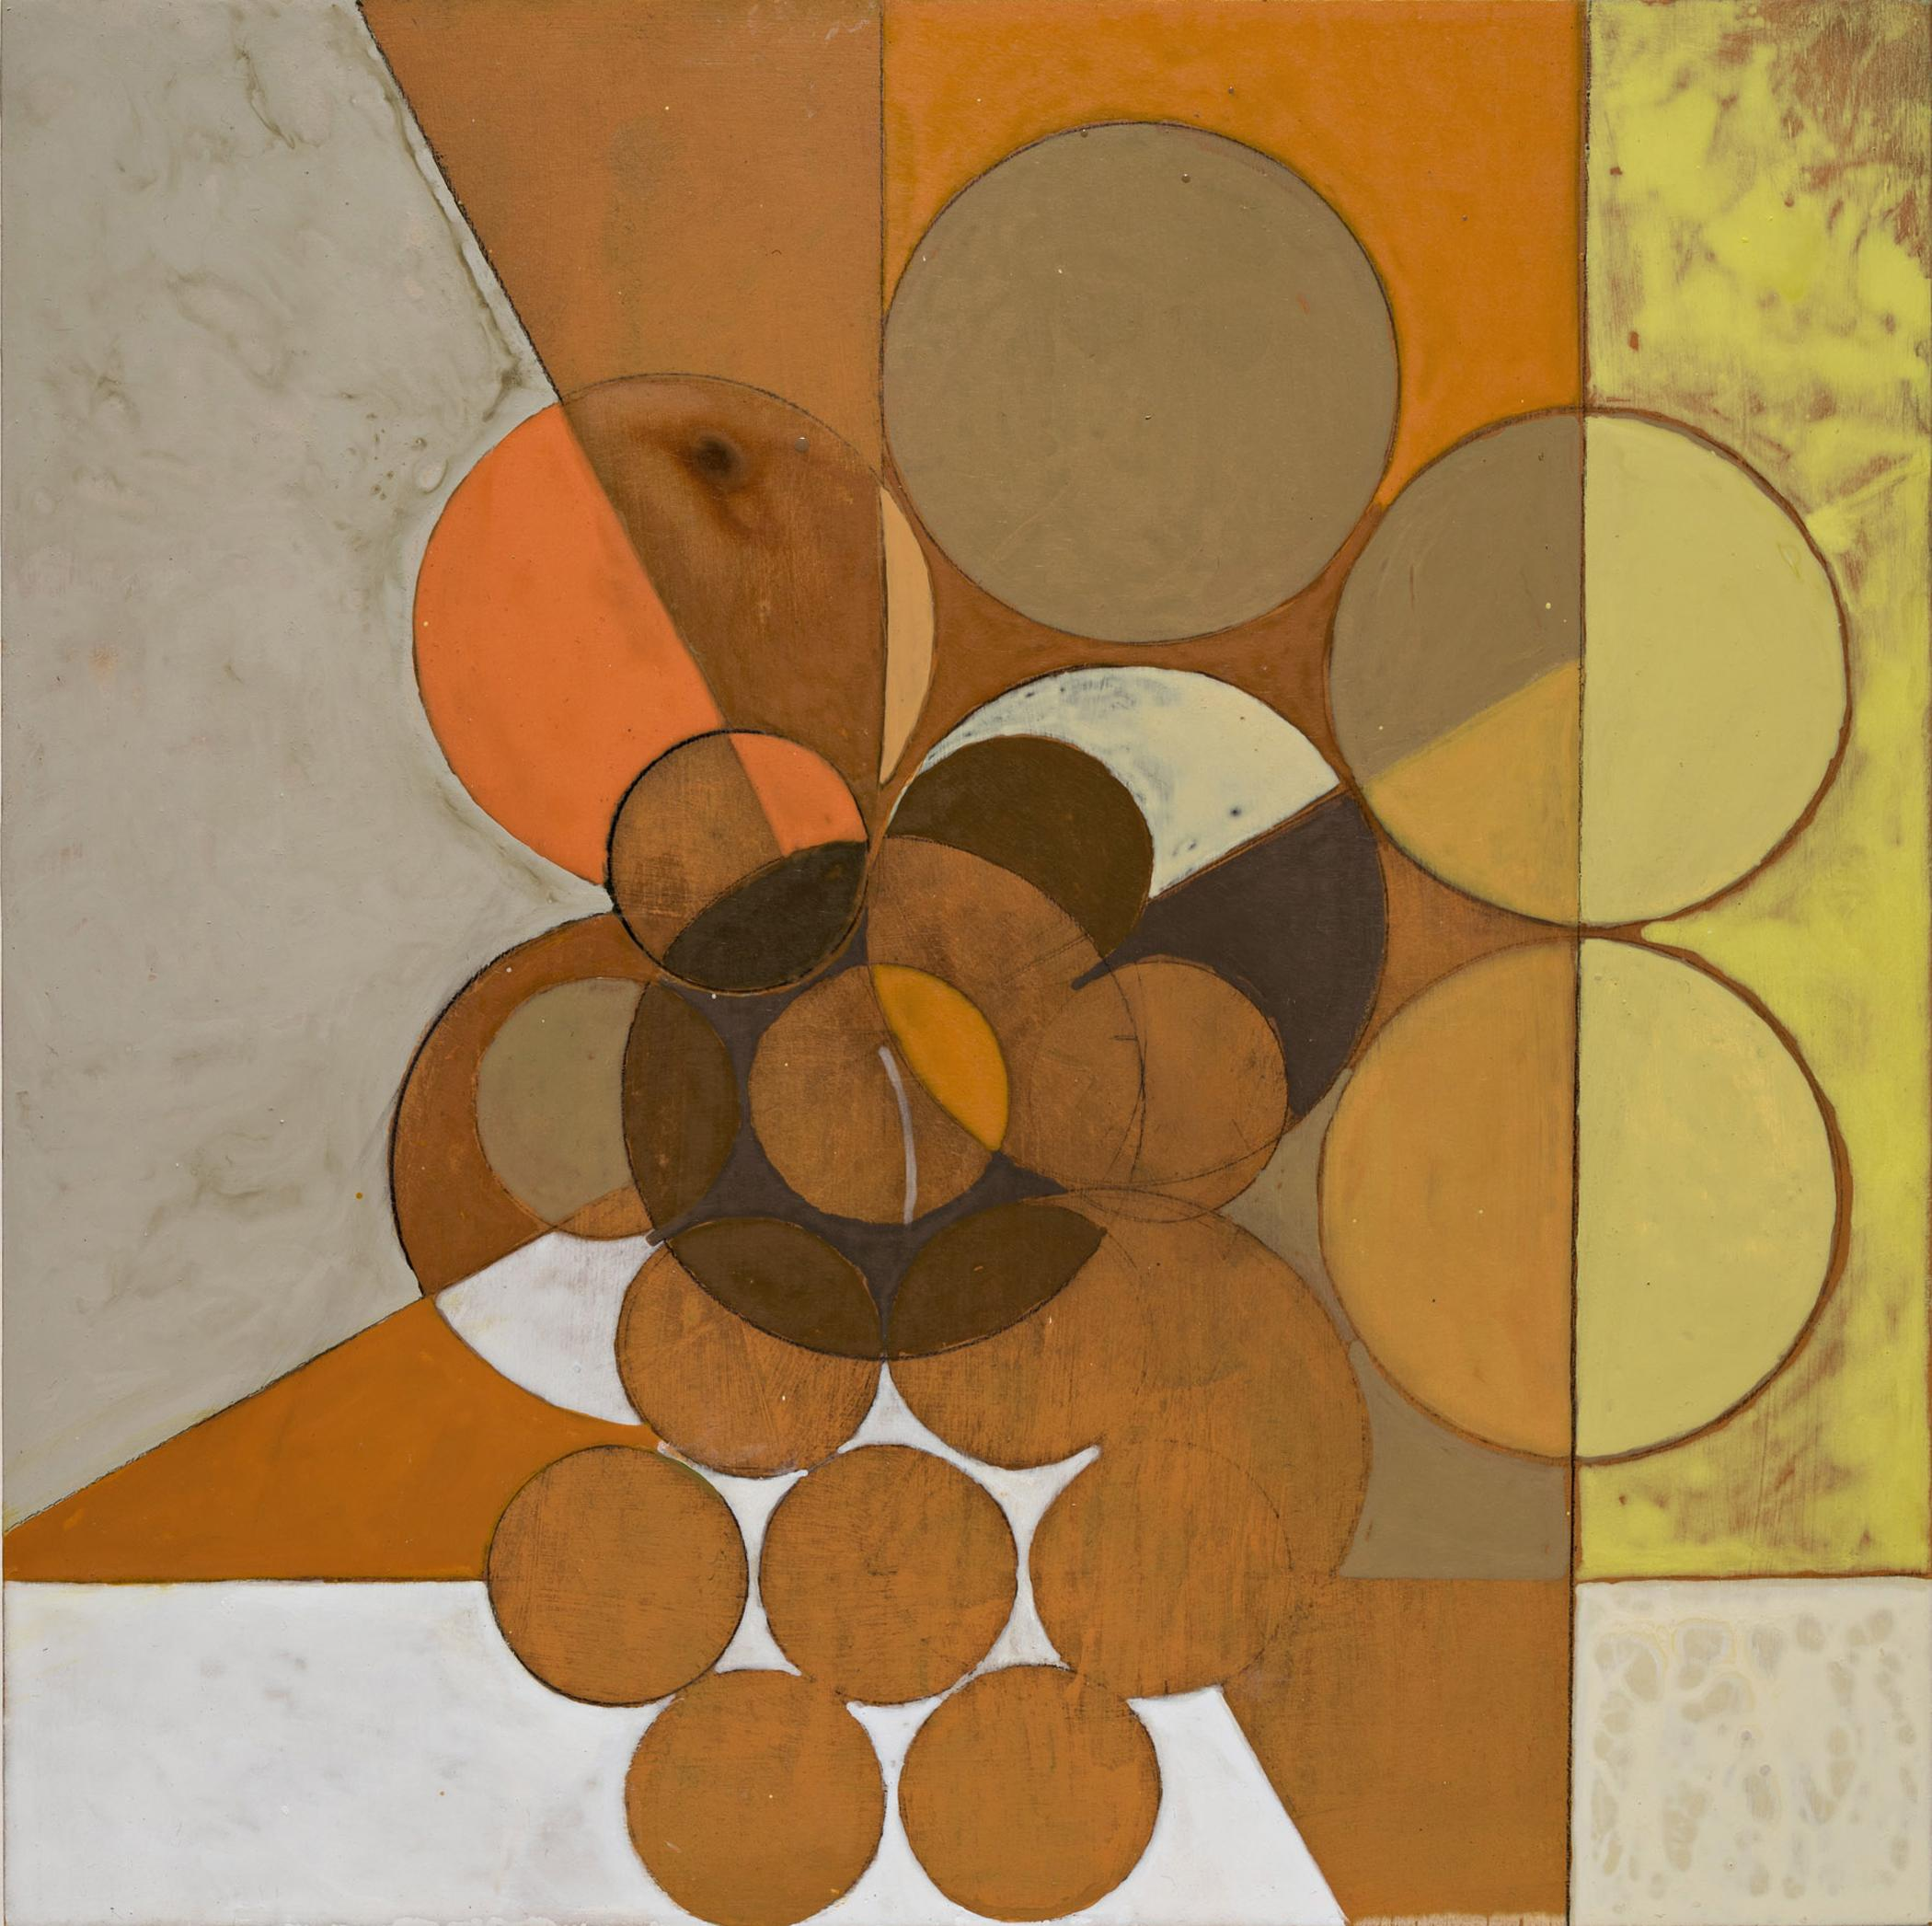 All Realities (Abstract Geometric Painting in Orange, Sienna, Yellow on Panel)